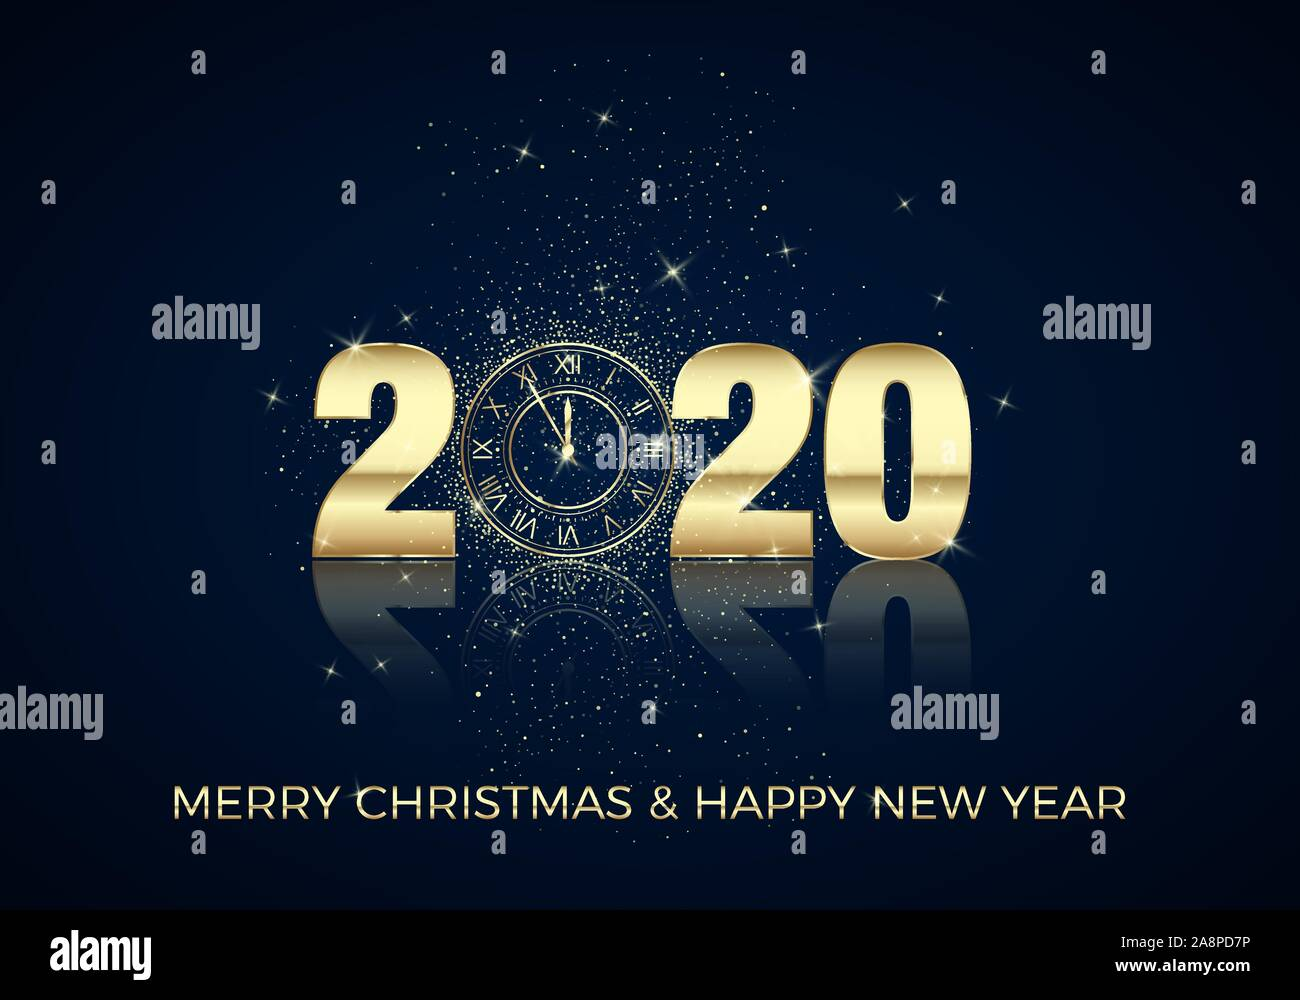 Happy New Year Greeting Card Golden Clock Instead Of Zero In 2020 Holiday Midnight Countdown Christmas Decoration Element For Banner Or Invitation Stock Vector Image Art Alamy